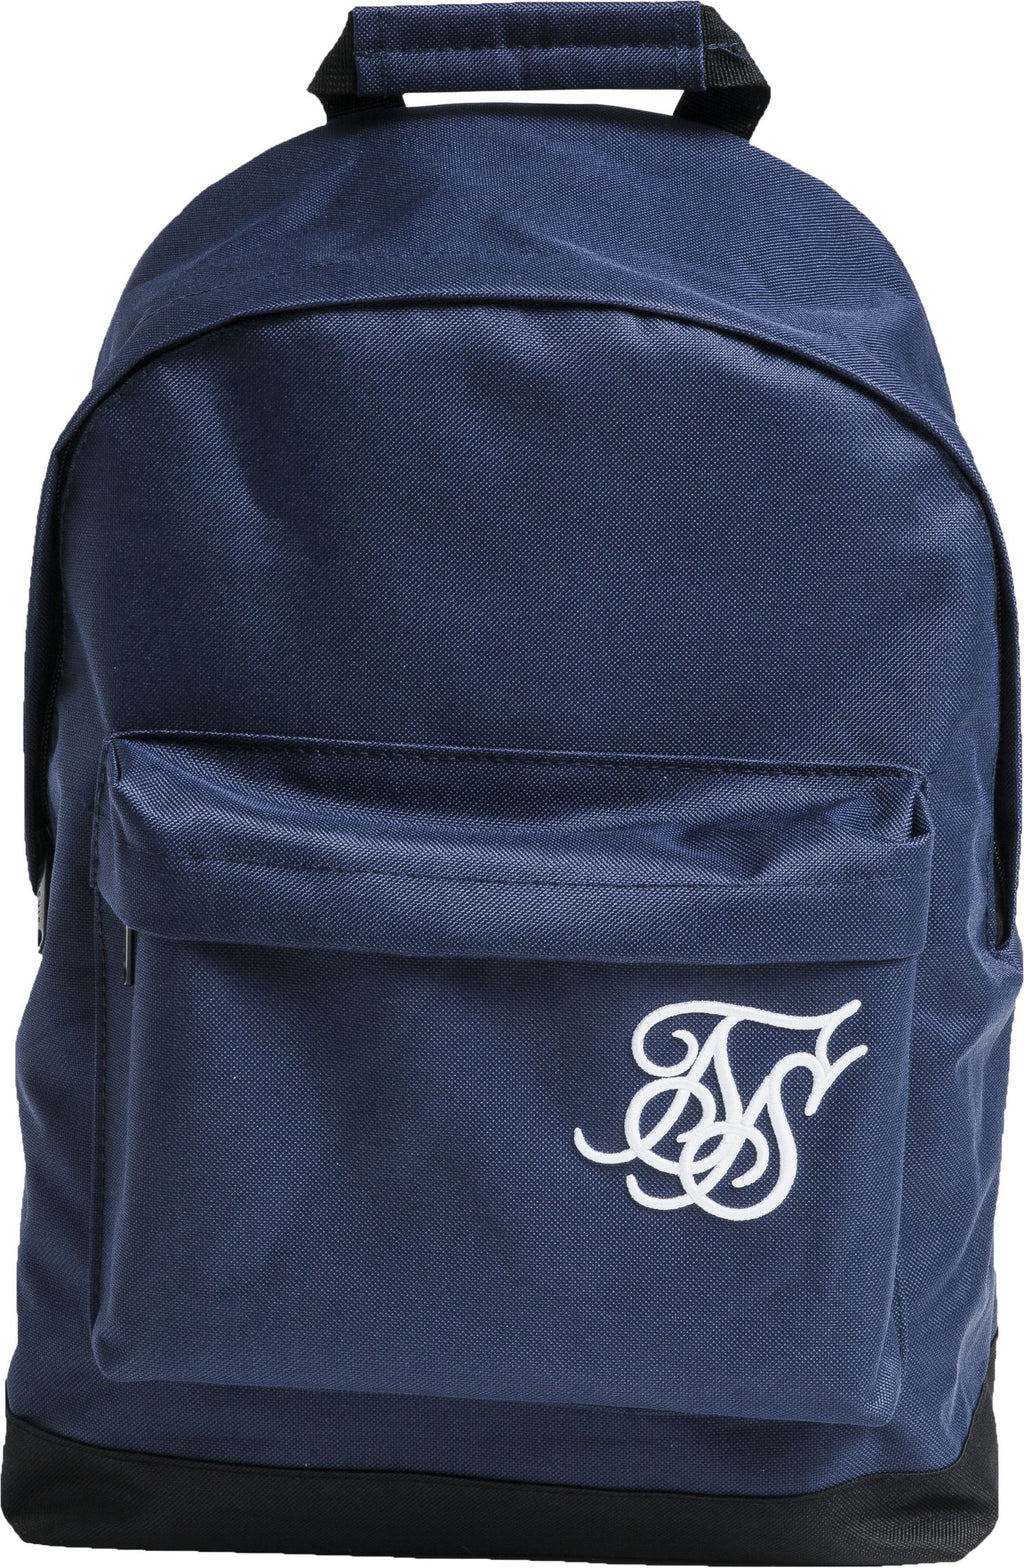 Sik Silk Pouch Backpack Bag